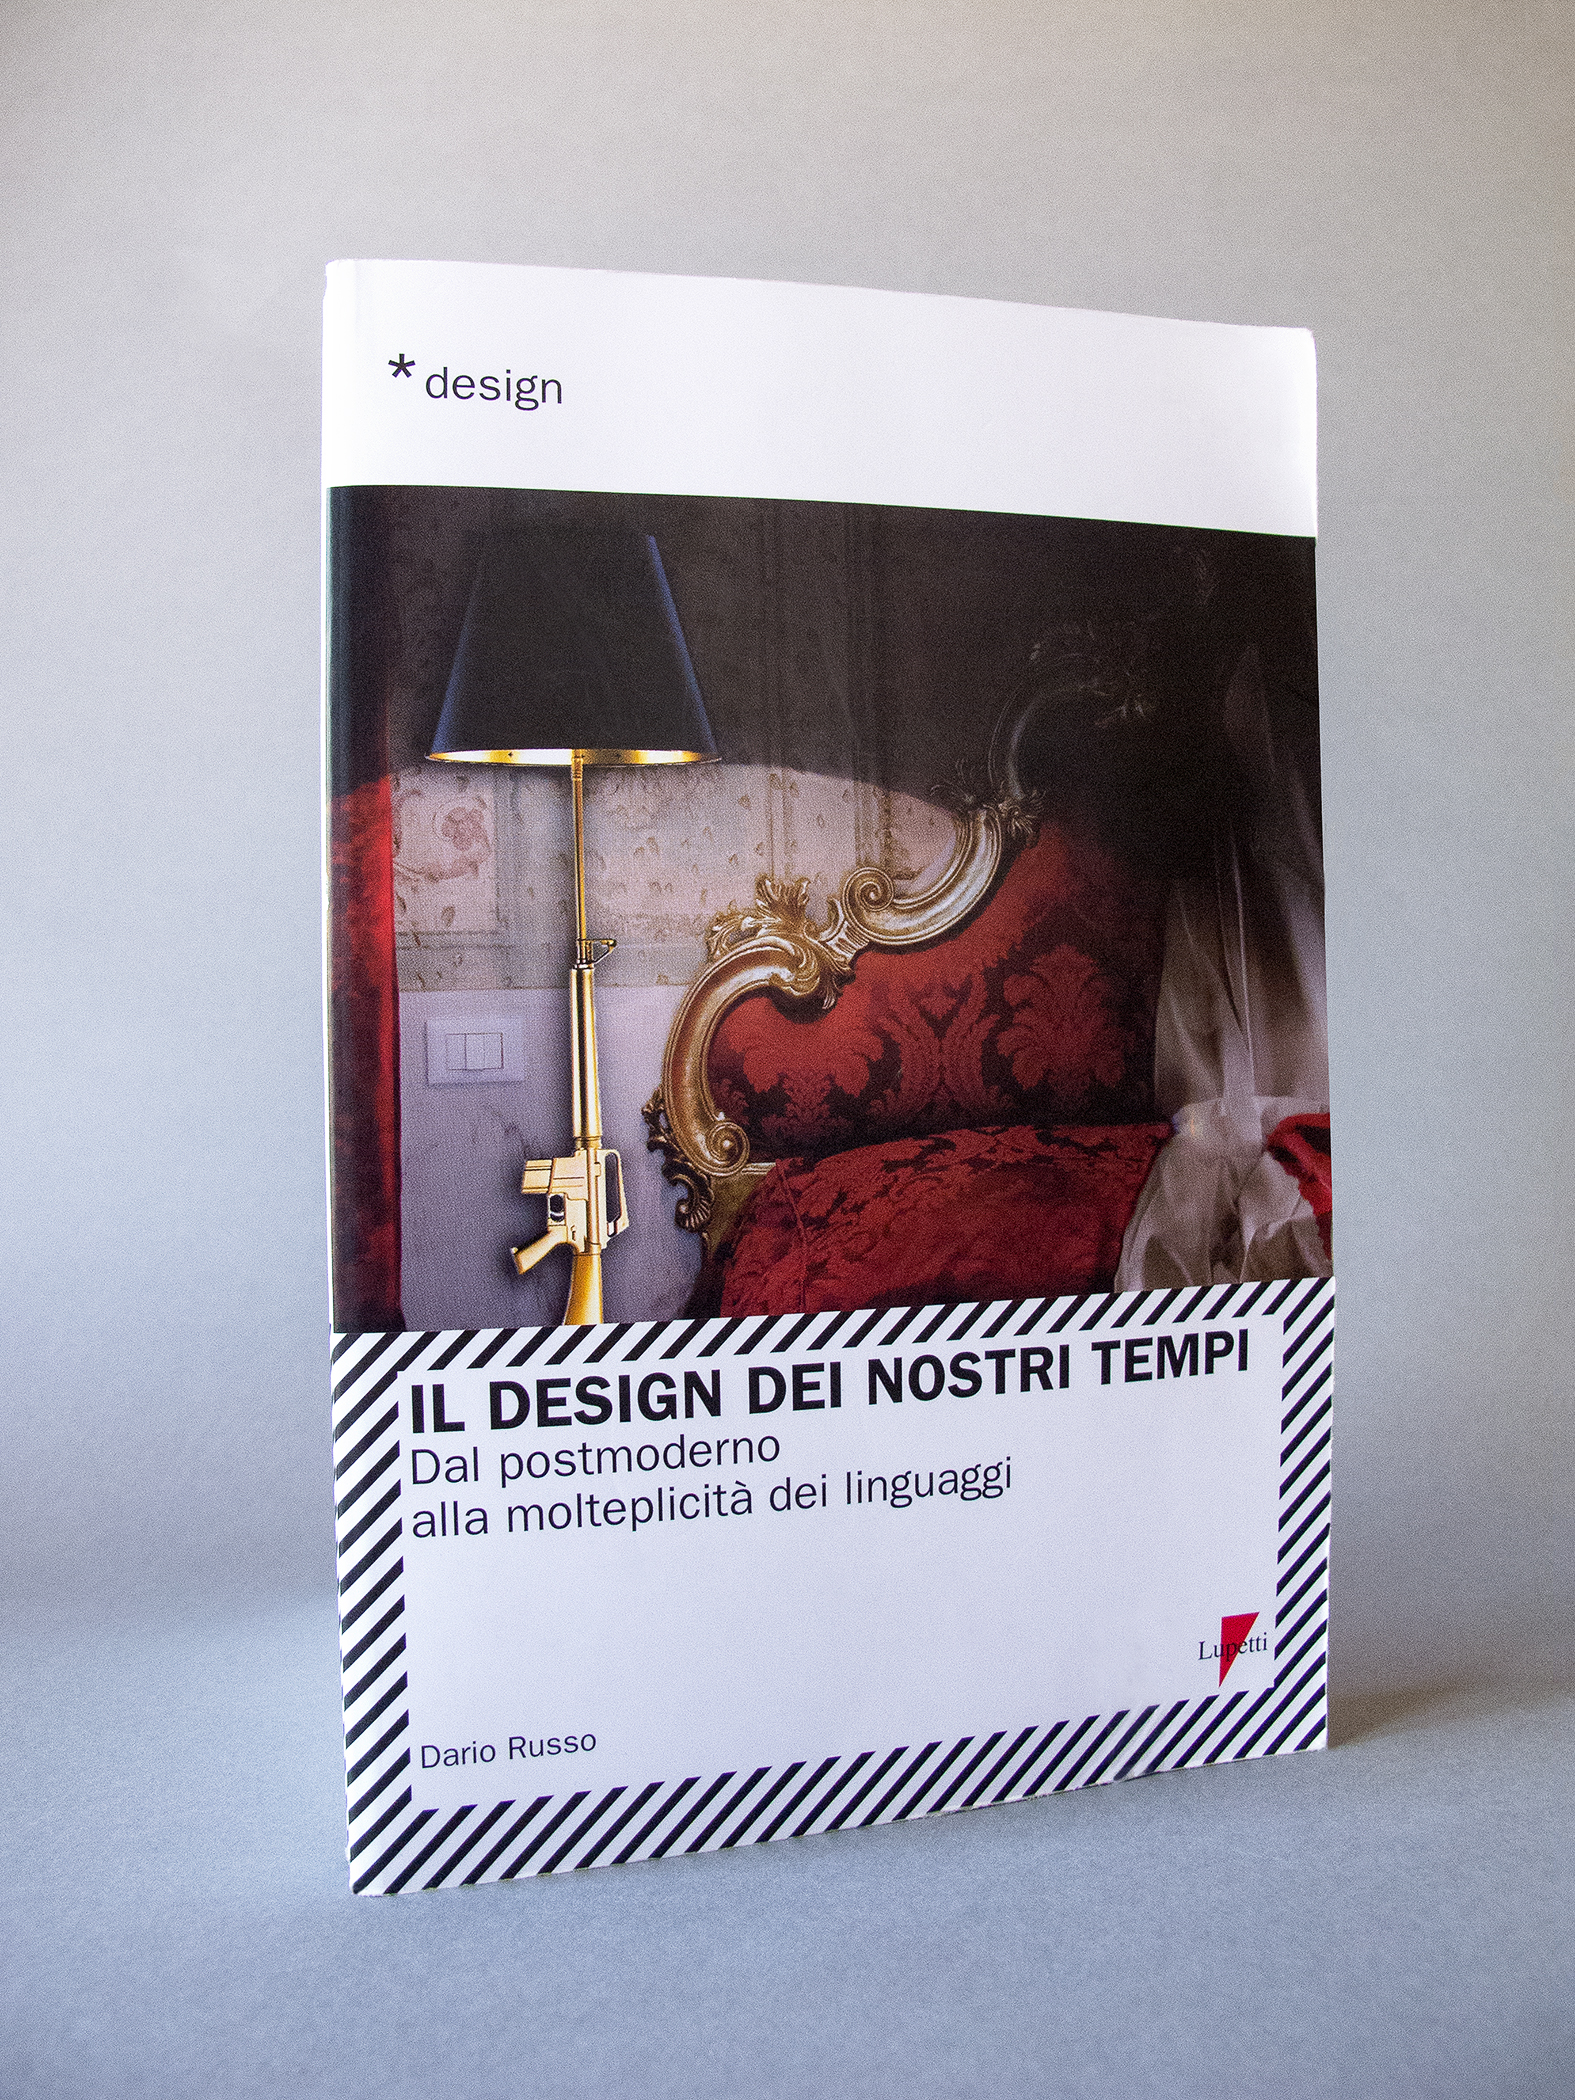 Il design dei nostri tempi, book cover, Philippe Starck, Lounge Gun Lamp